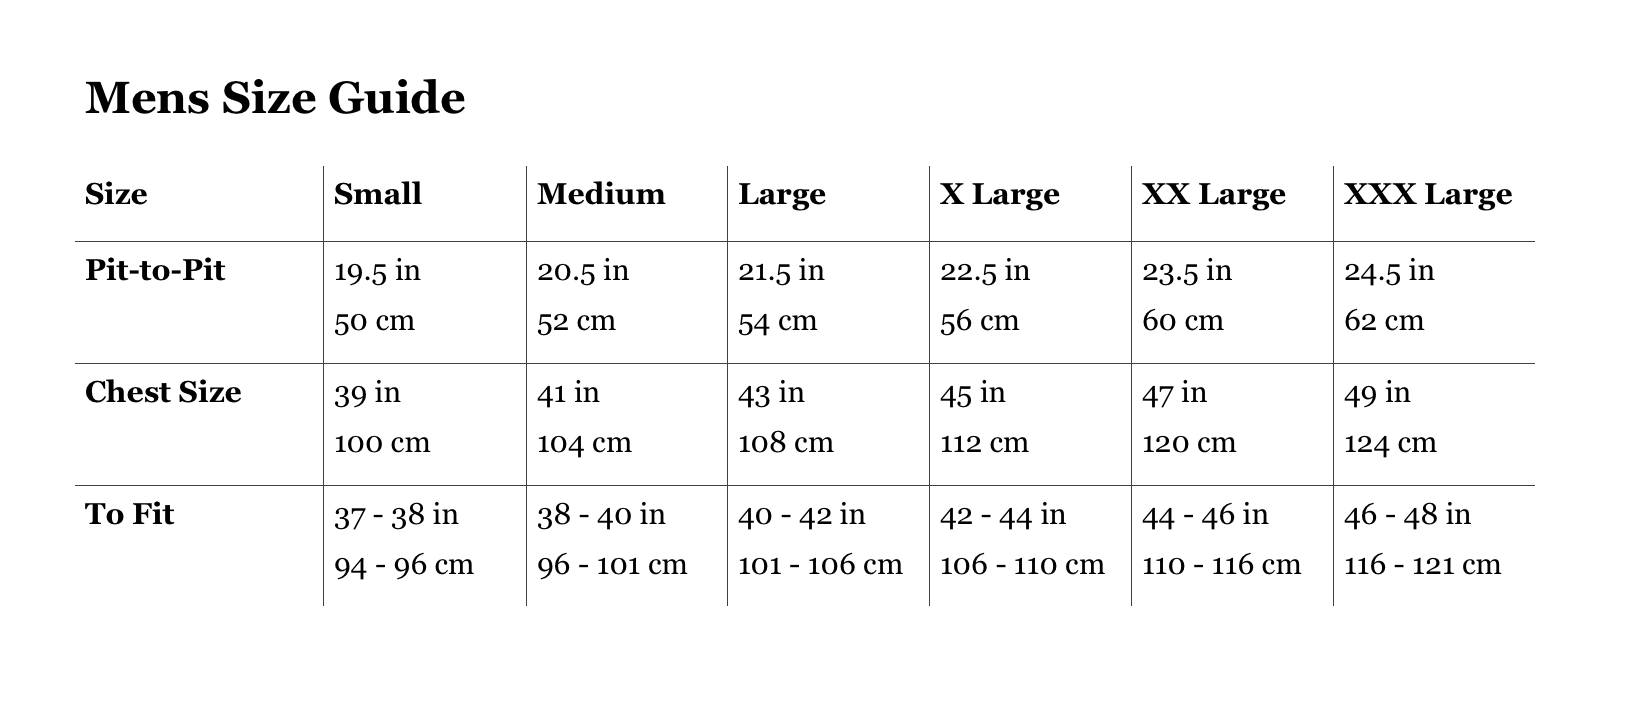 Robinsons Mens Size Guide